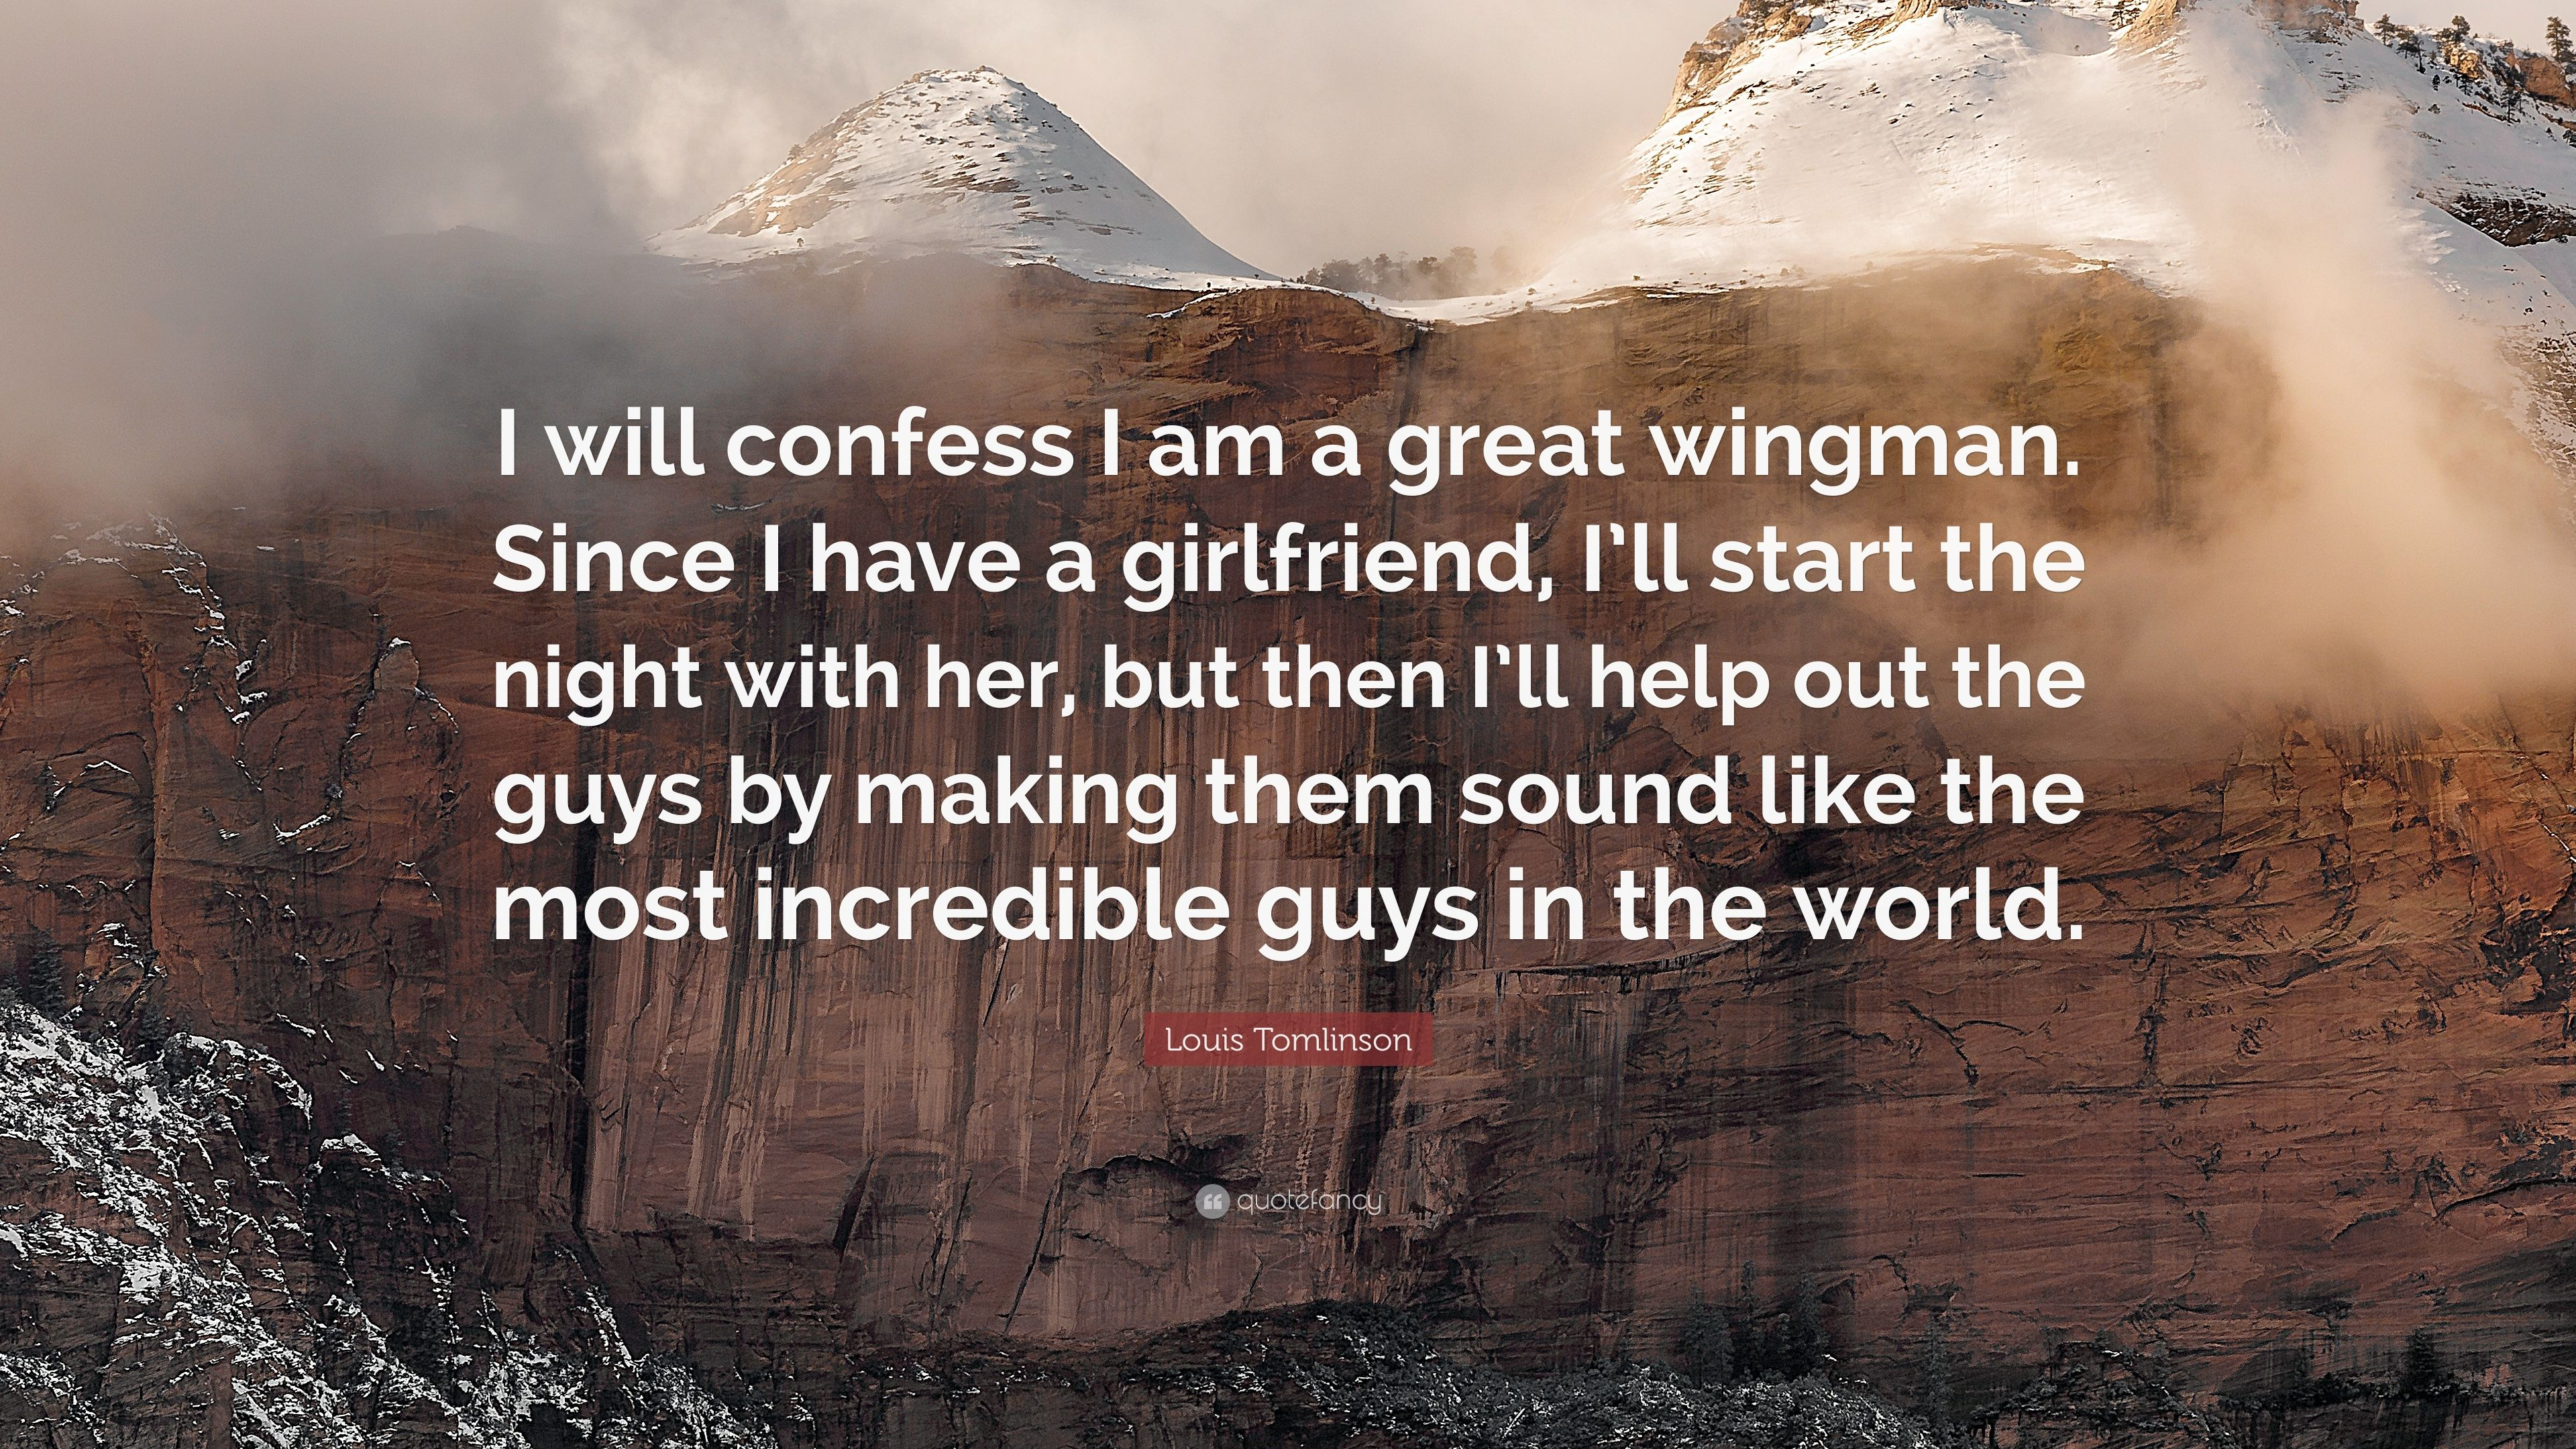 Louis Tomlinson Quote: U201cI Will Confess I Am A Great Wingman. Since I